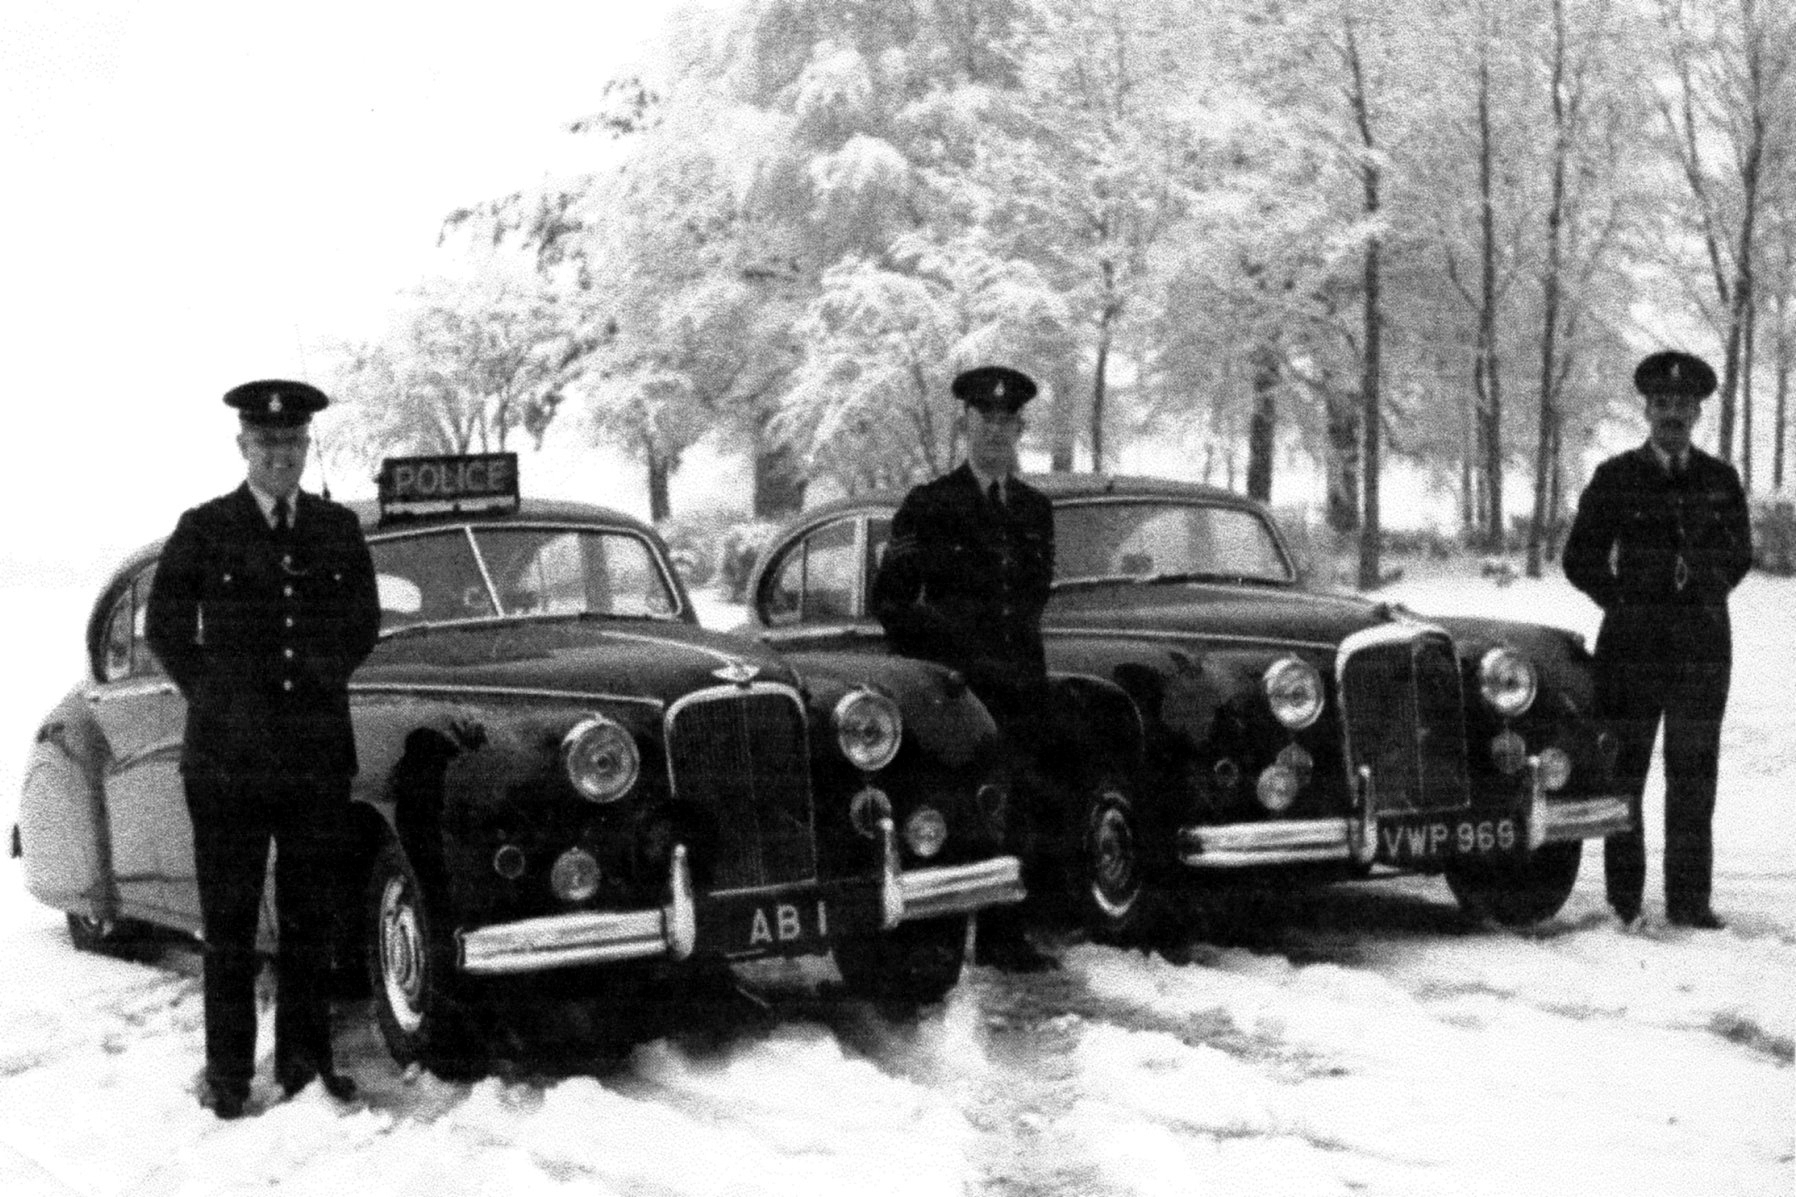 ICONIC: The AB 1 number plate was feared by police officers across the area.